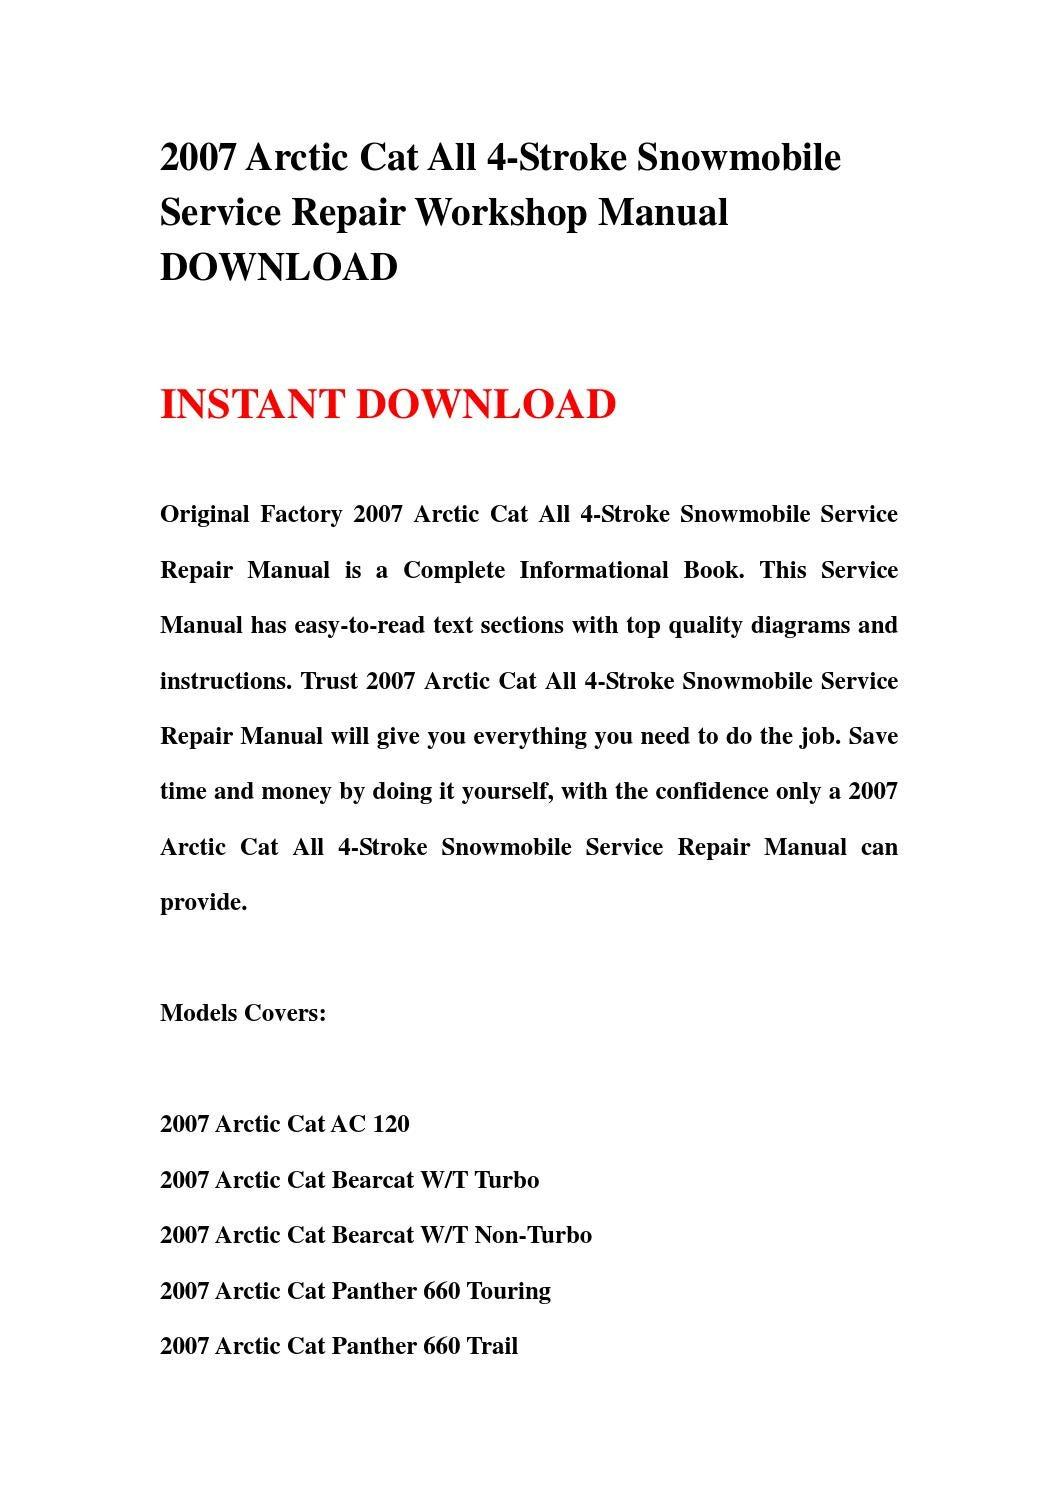 [DIAGRAM_3ER]  2007 arctic cat all 4 stroke snowmobile service repair workshop manual  download by kskfhnmm - issuu | Arctic Cat Snowmobile 4 Stroke Wiring Diagrams |  | Issuu